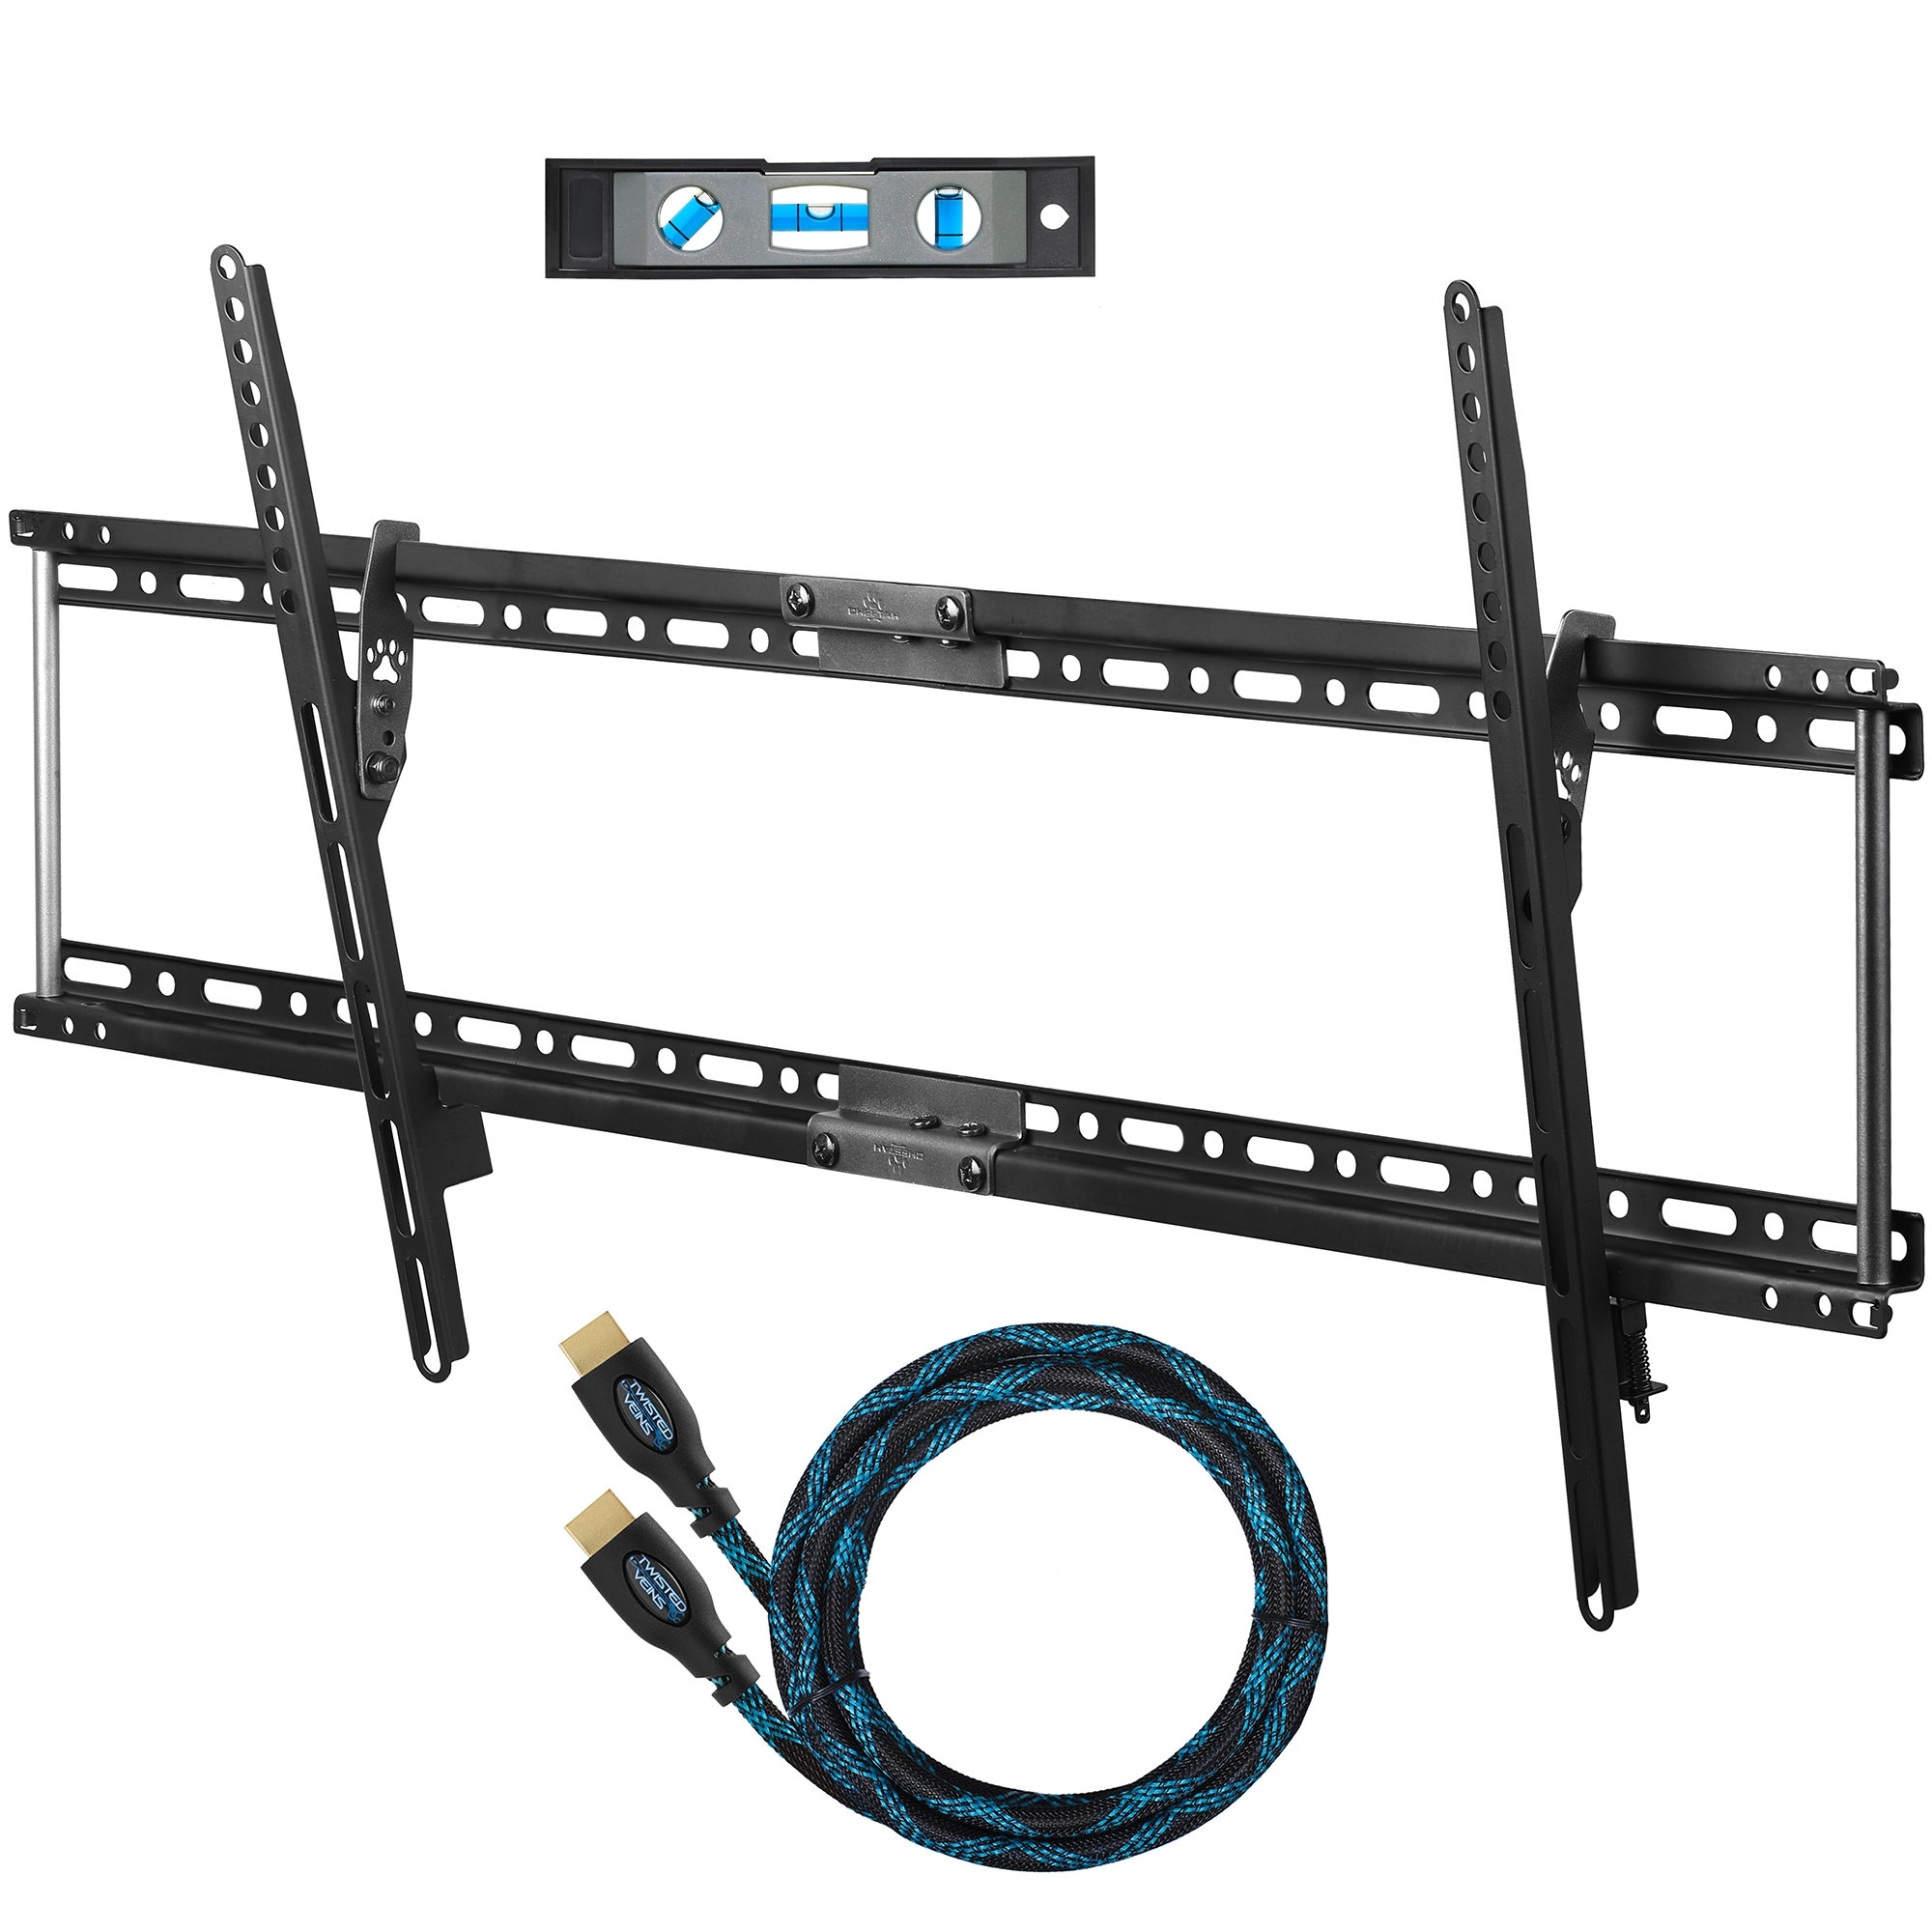 cheetah mounts aptmlb tv wall mount for inch tvs max vesa 800x400 bundle with 10feet braided hdmi cable and a 6inch 3axis magnetic bubble